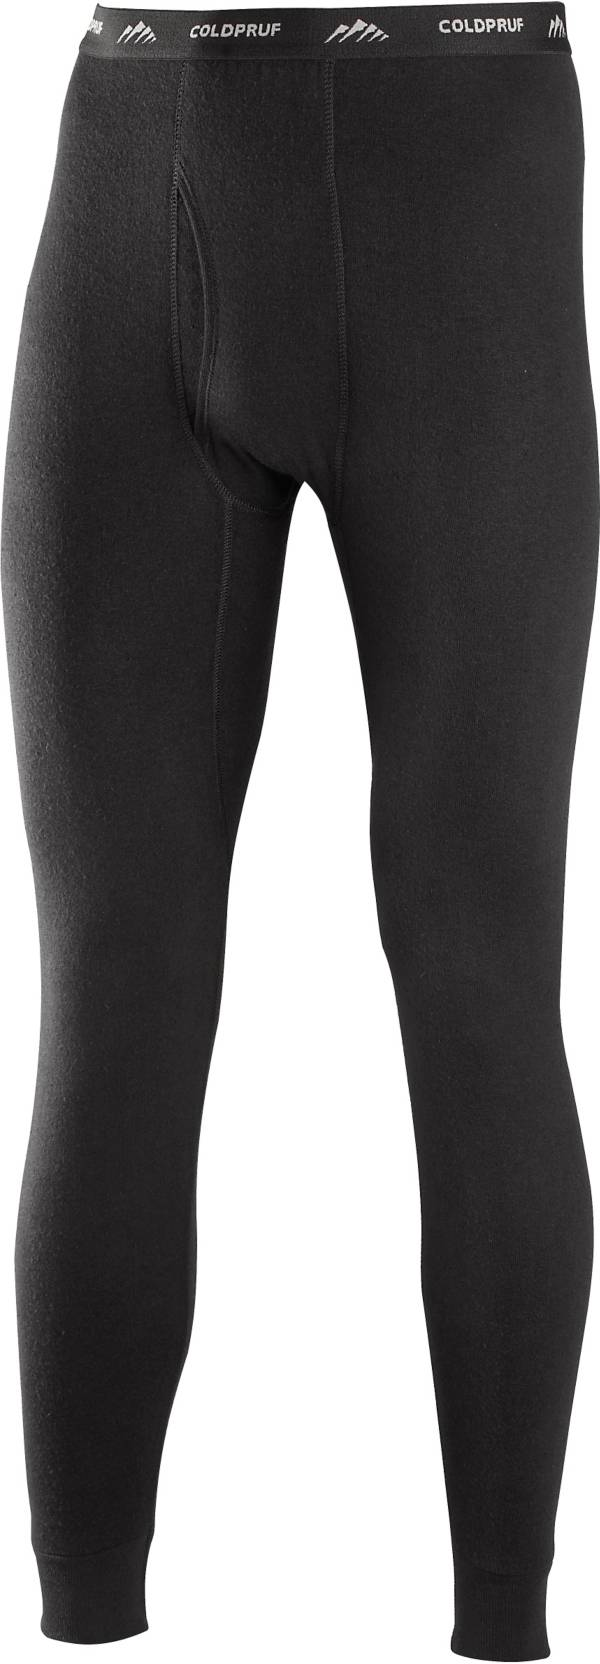 ColdPruf Men's Basic Base Layer Leggings product image